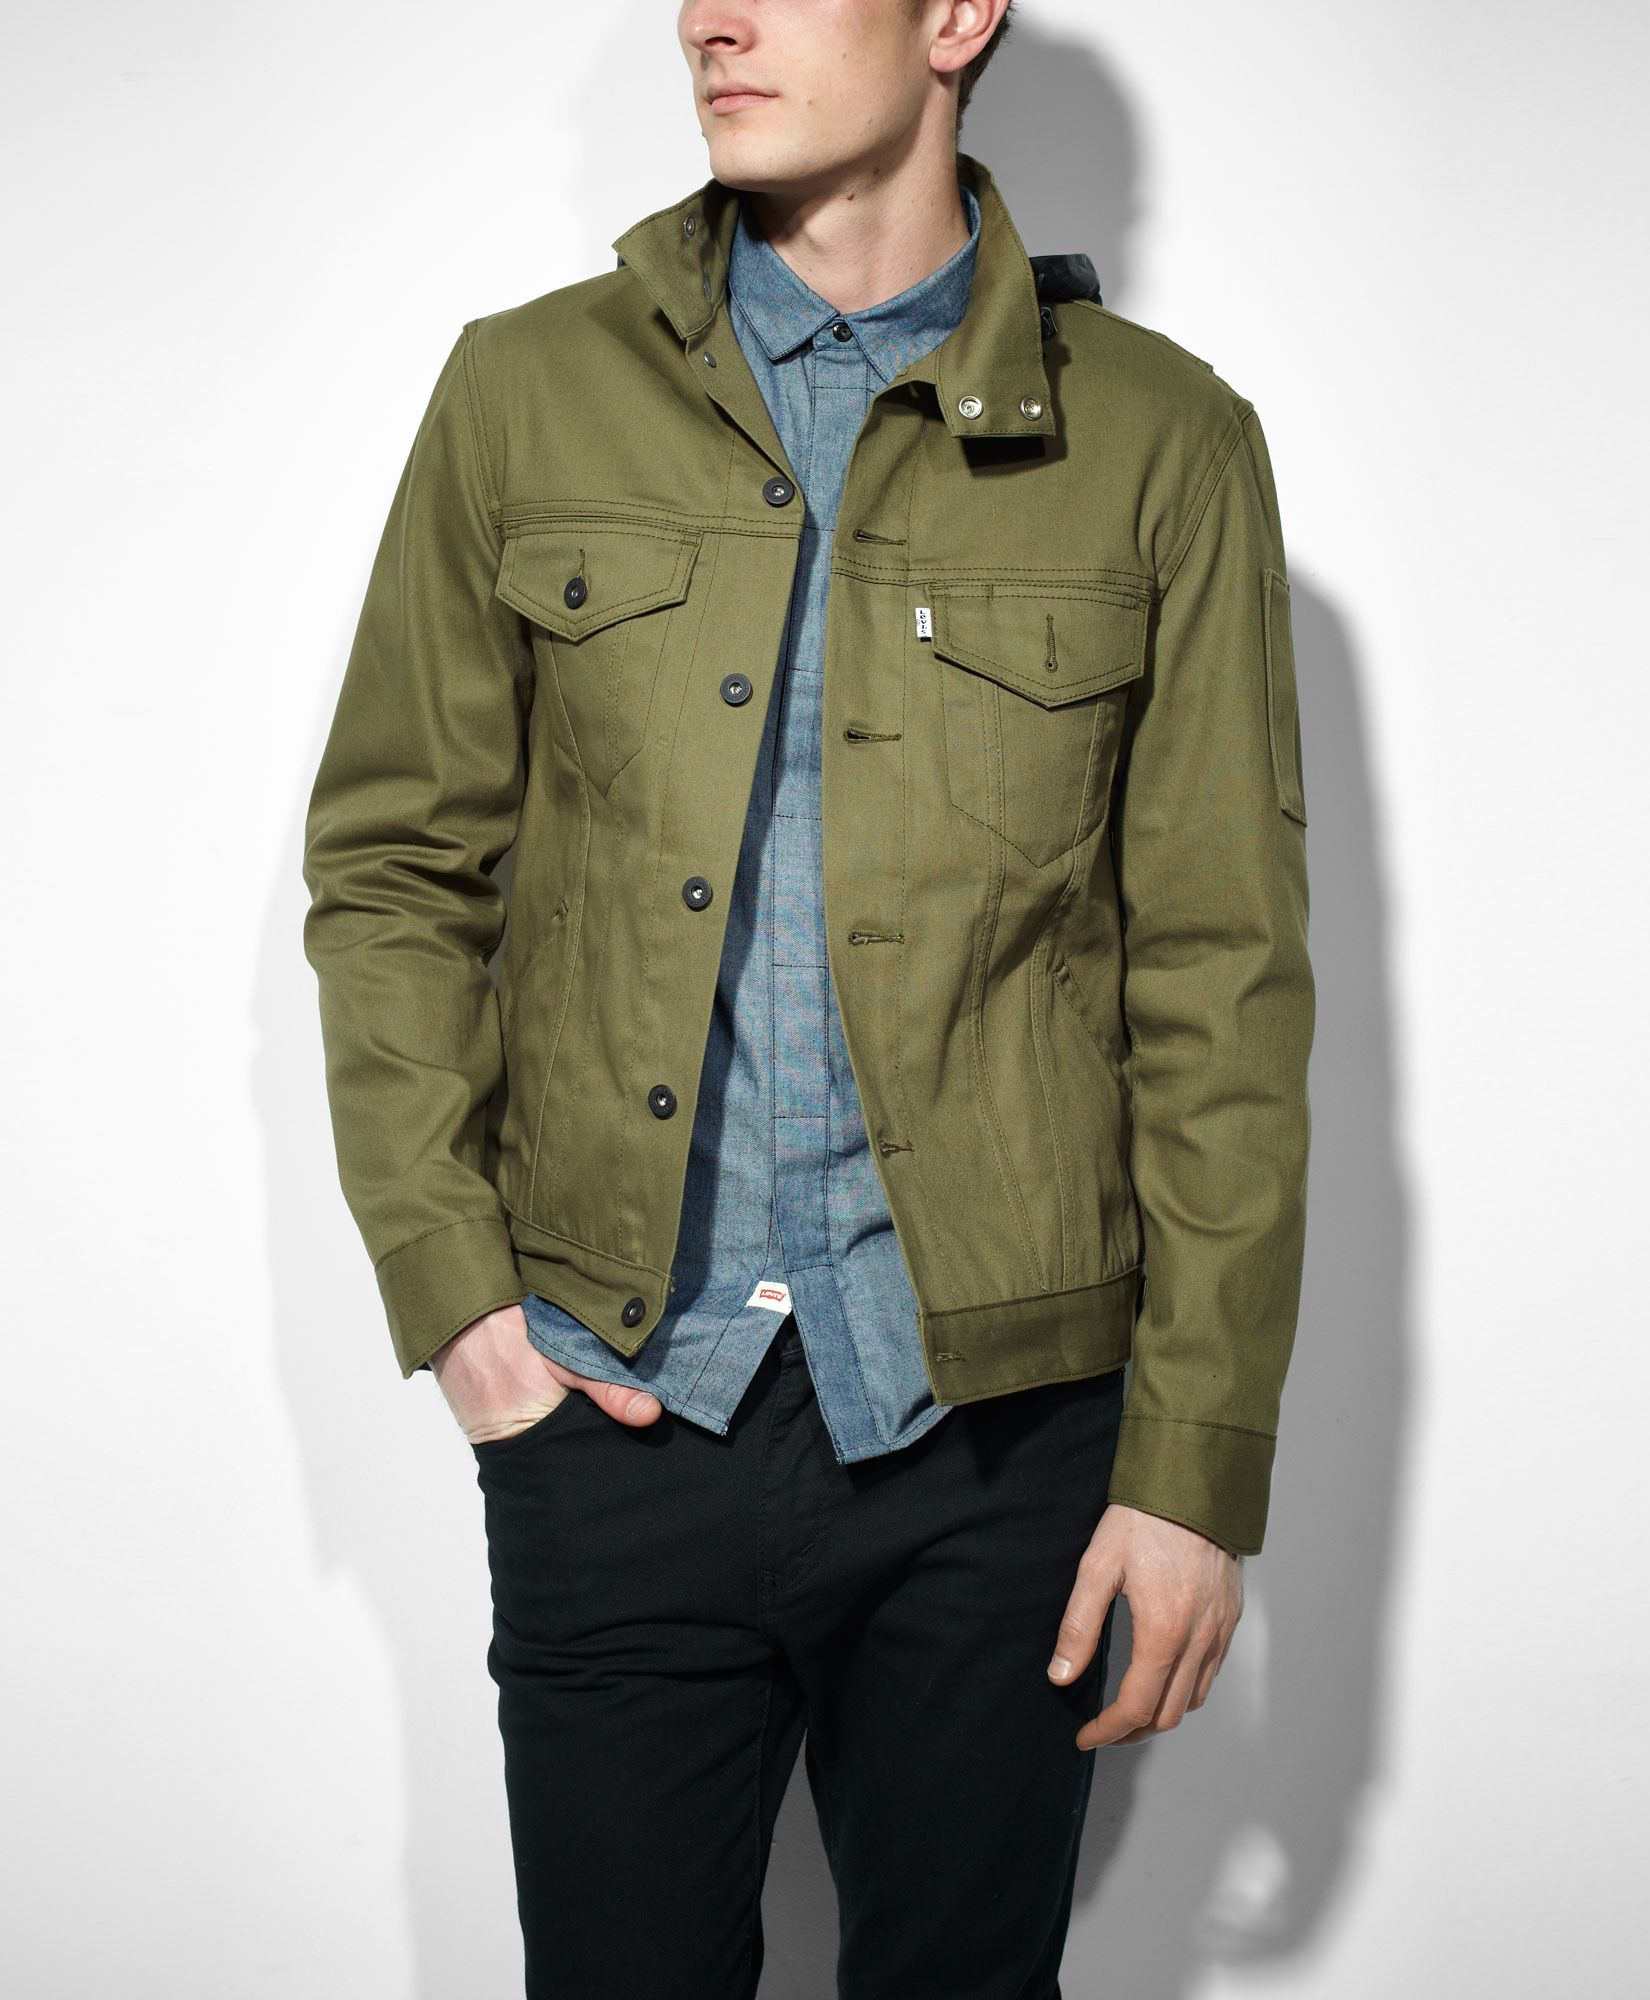 dating levi denim jackets A standard levi's trucker jacket costs $148, though levi's has been quick to point  out that designer denim jackets can run well over $400 i'm no.